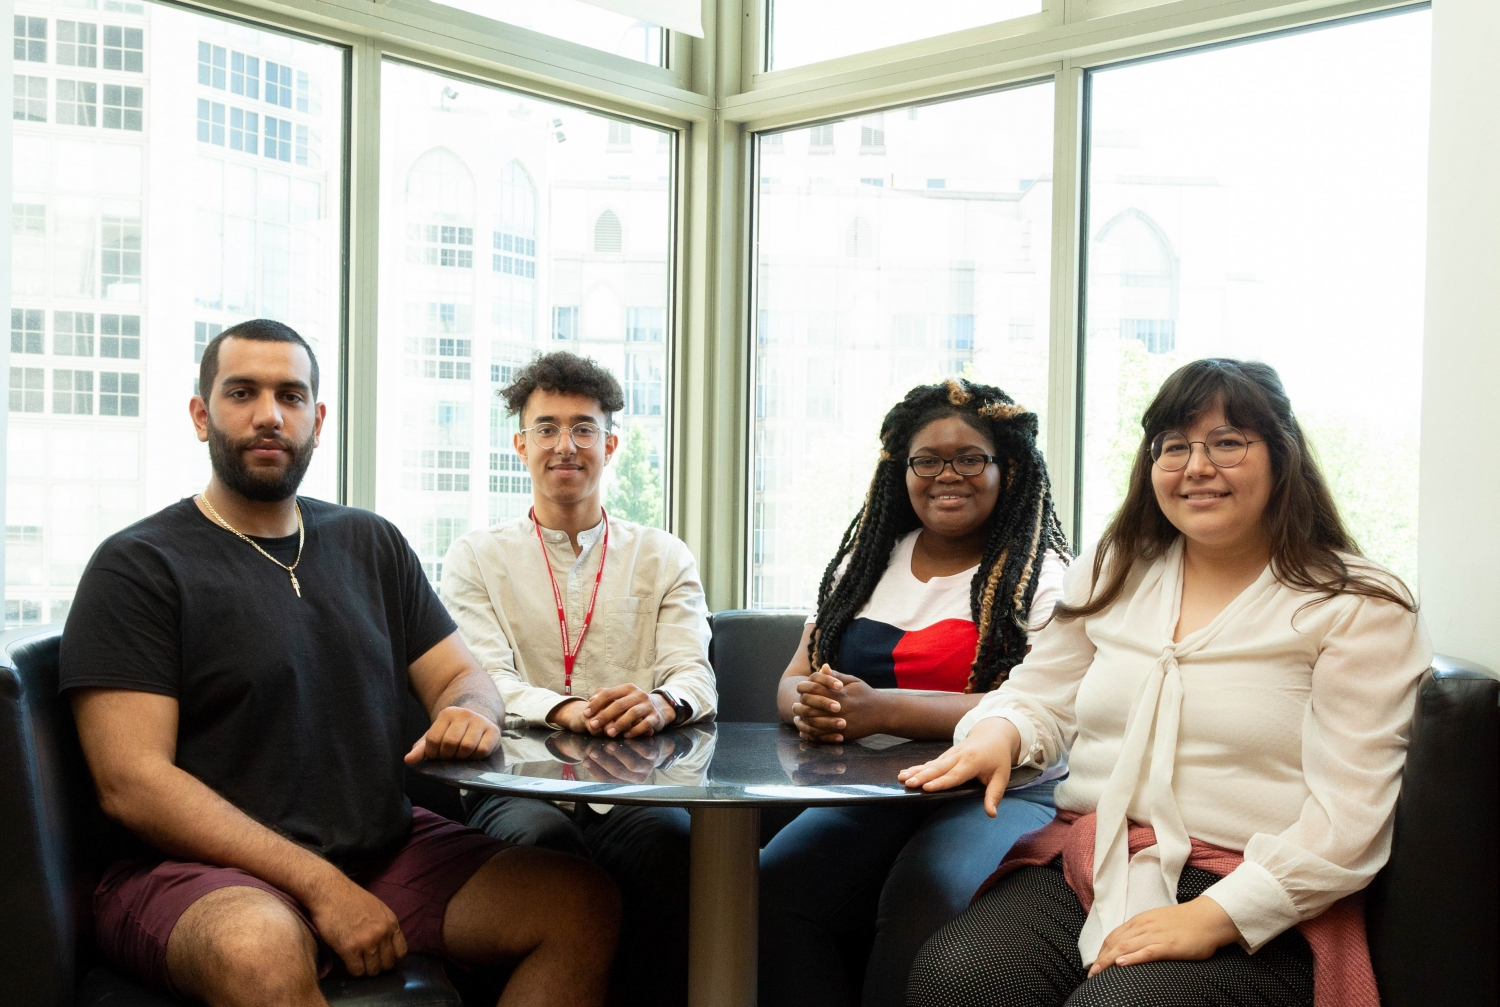 IMSD Students Rafael Colon, Viktor Belay, Amanda Simon and Valerie Gallegos